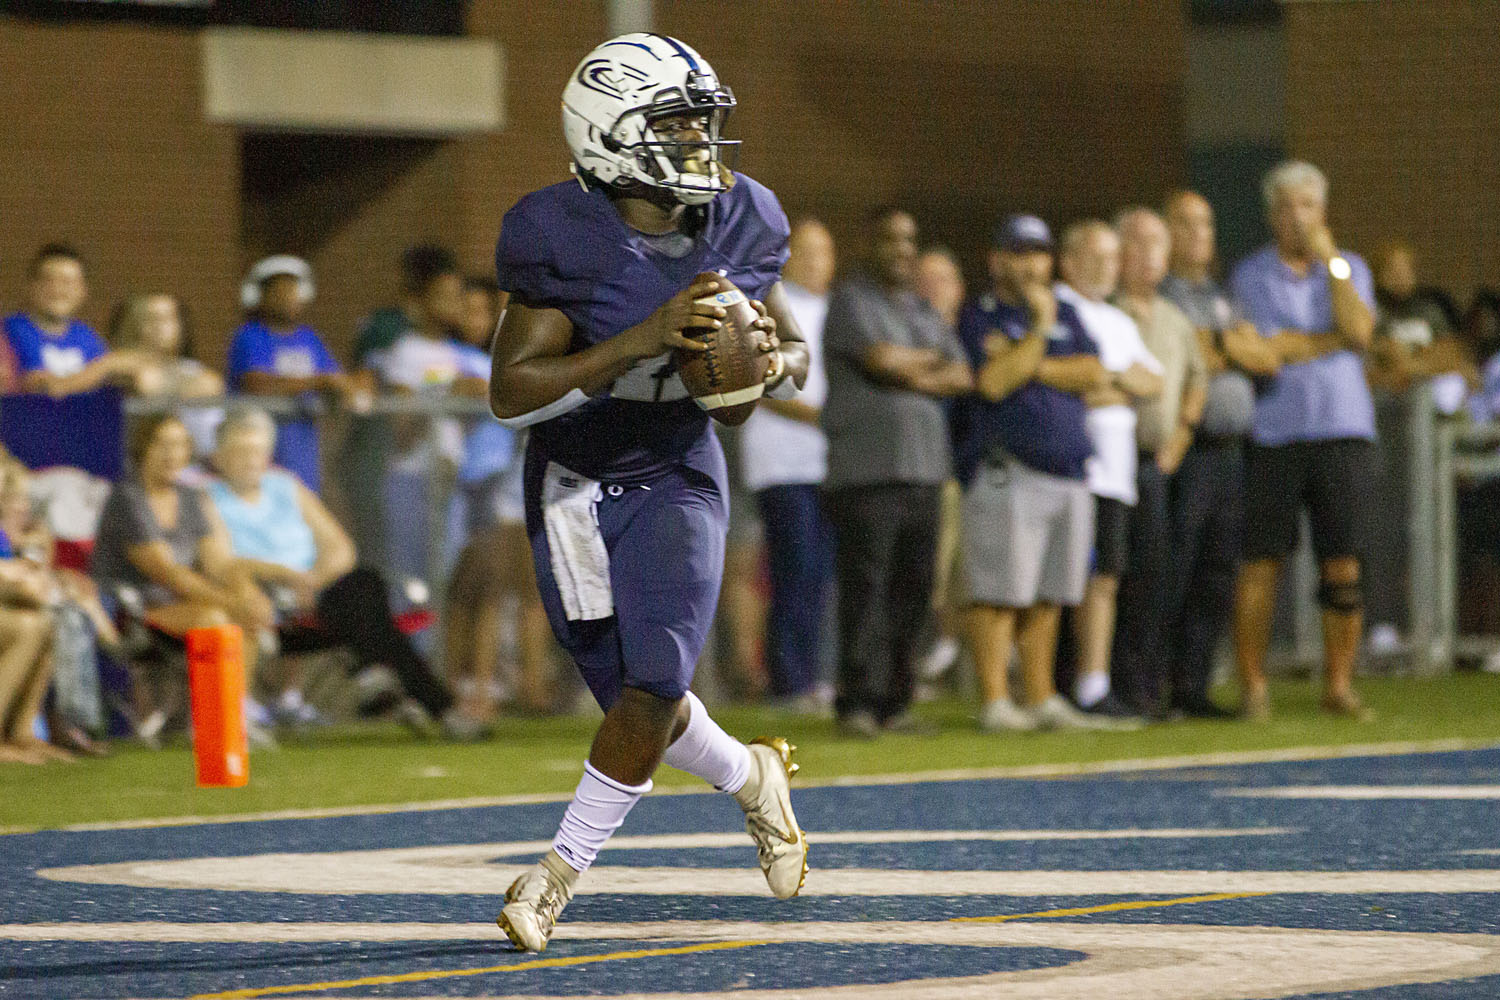 Clay-Chalkville bolsters playoff standing with dominant victory over Pell City